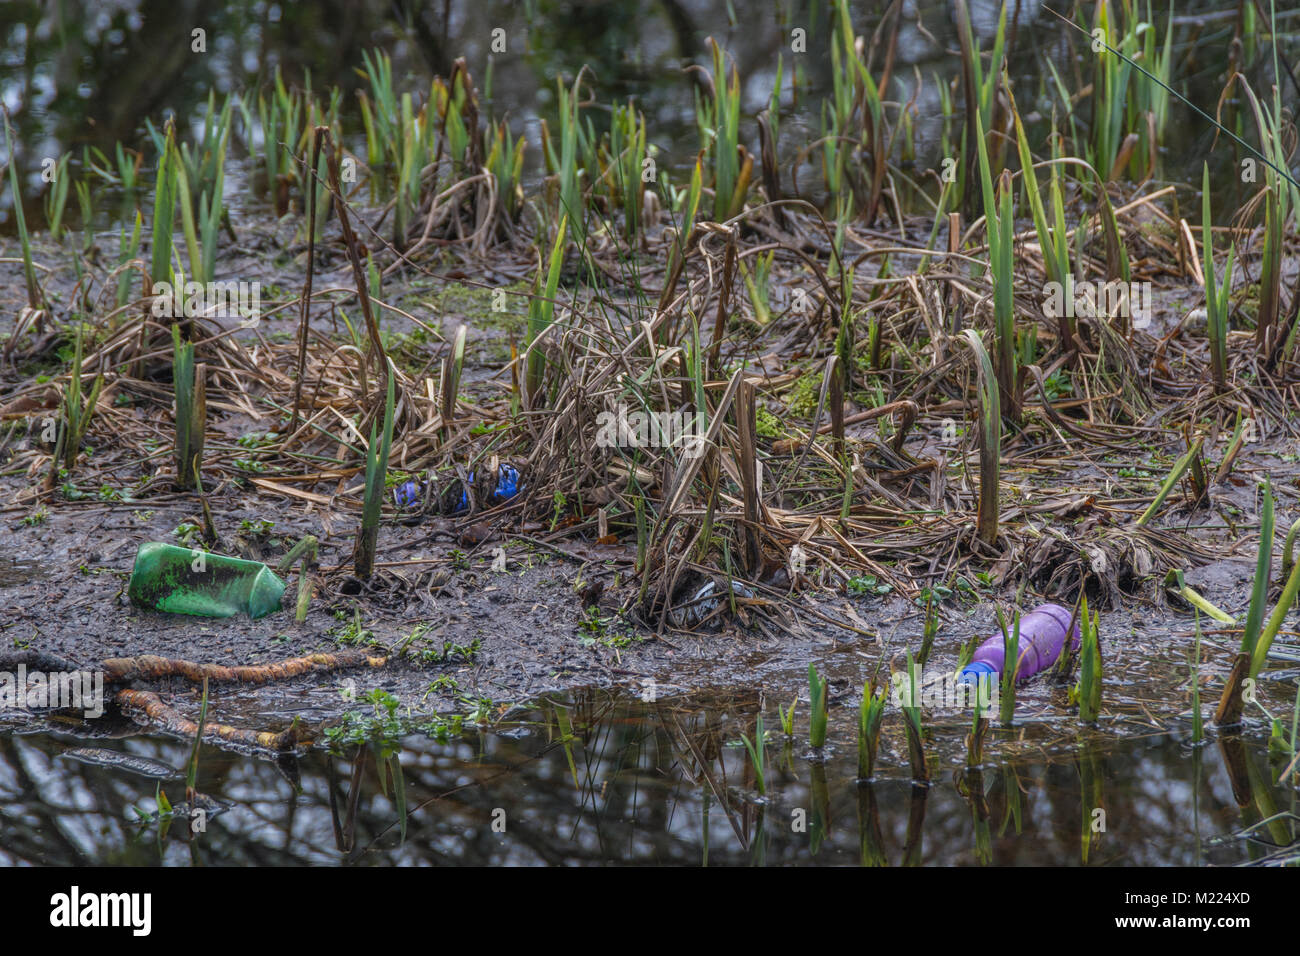 Plastic bottle washed up on marshy area - metaphor for environmental pollution, plastic pollution / plastic waste - Stock Image